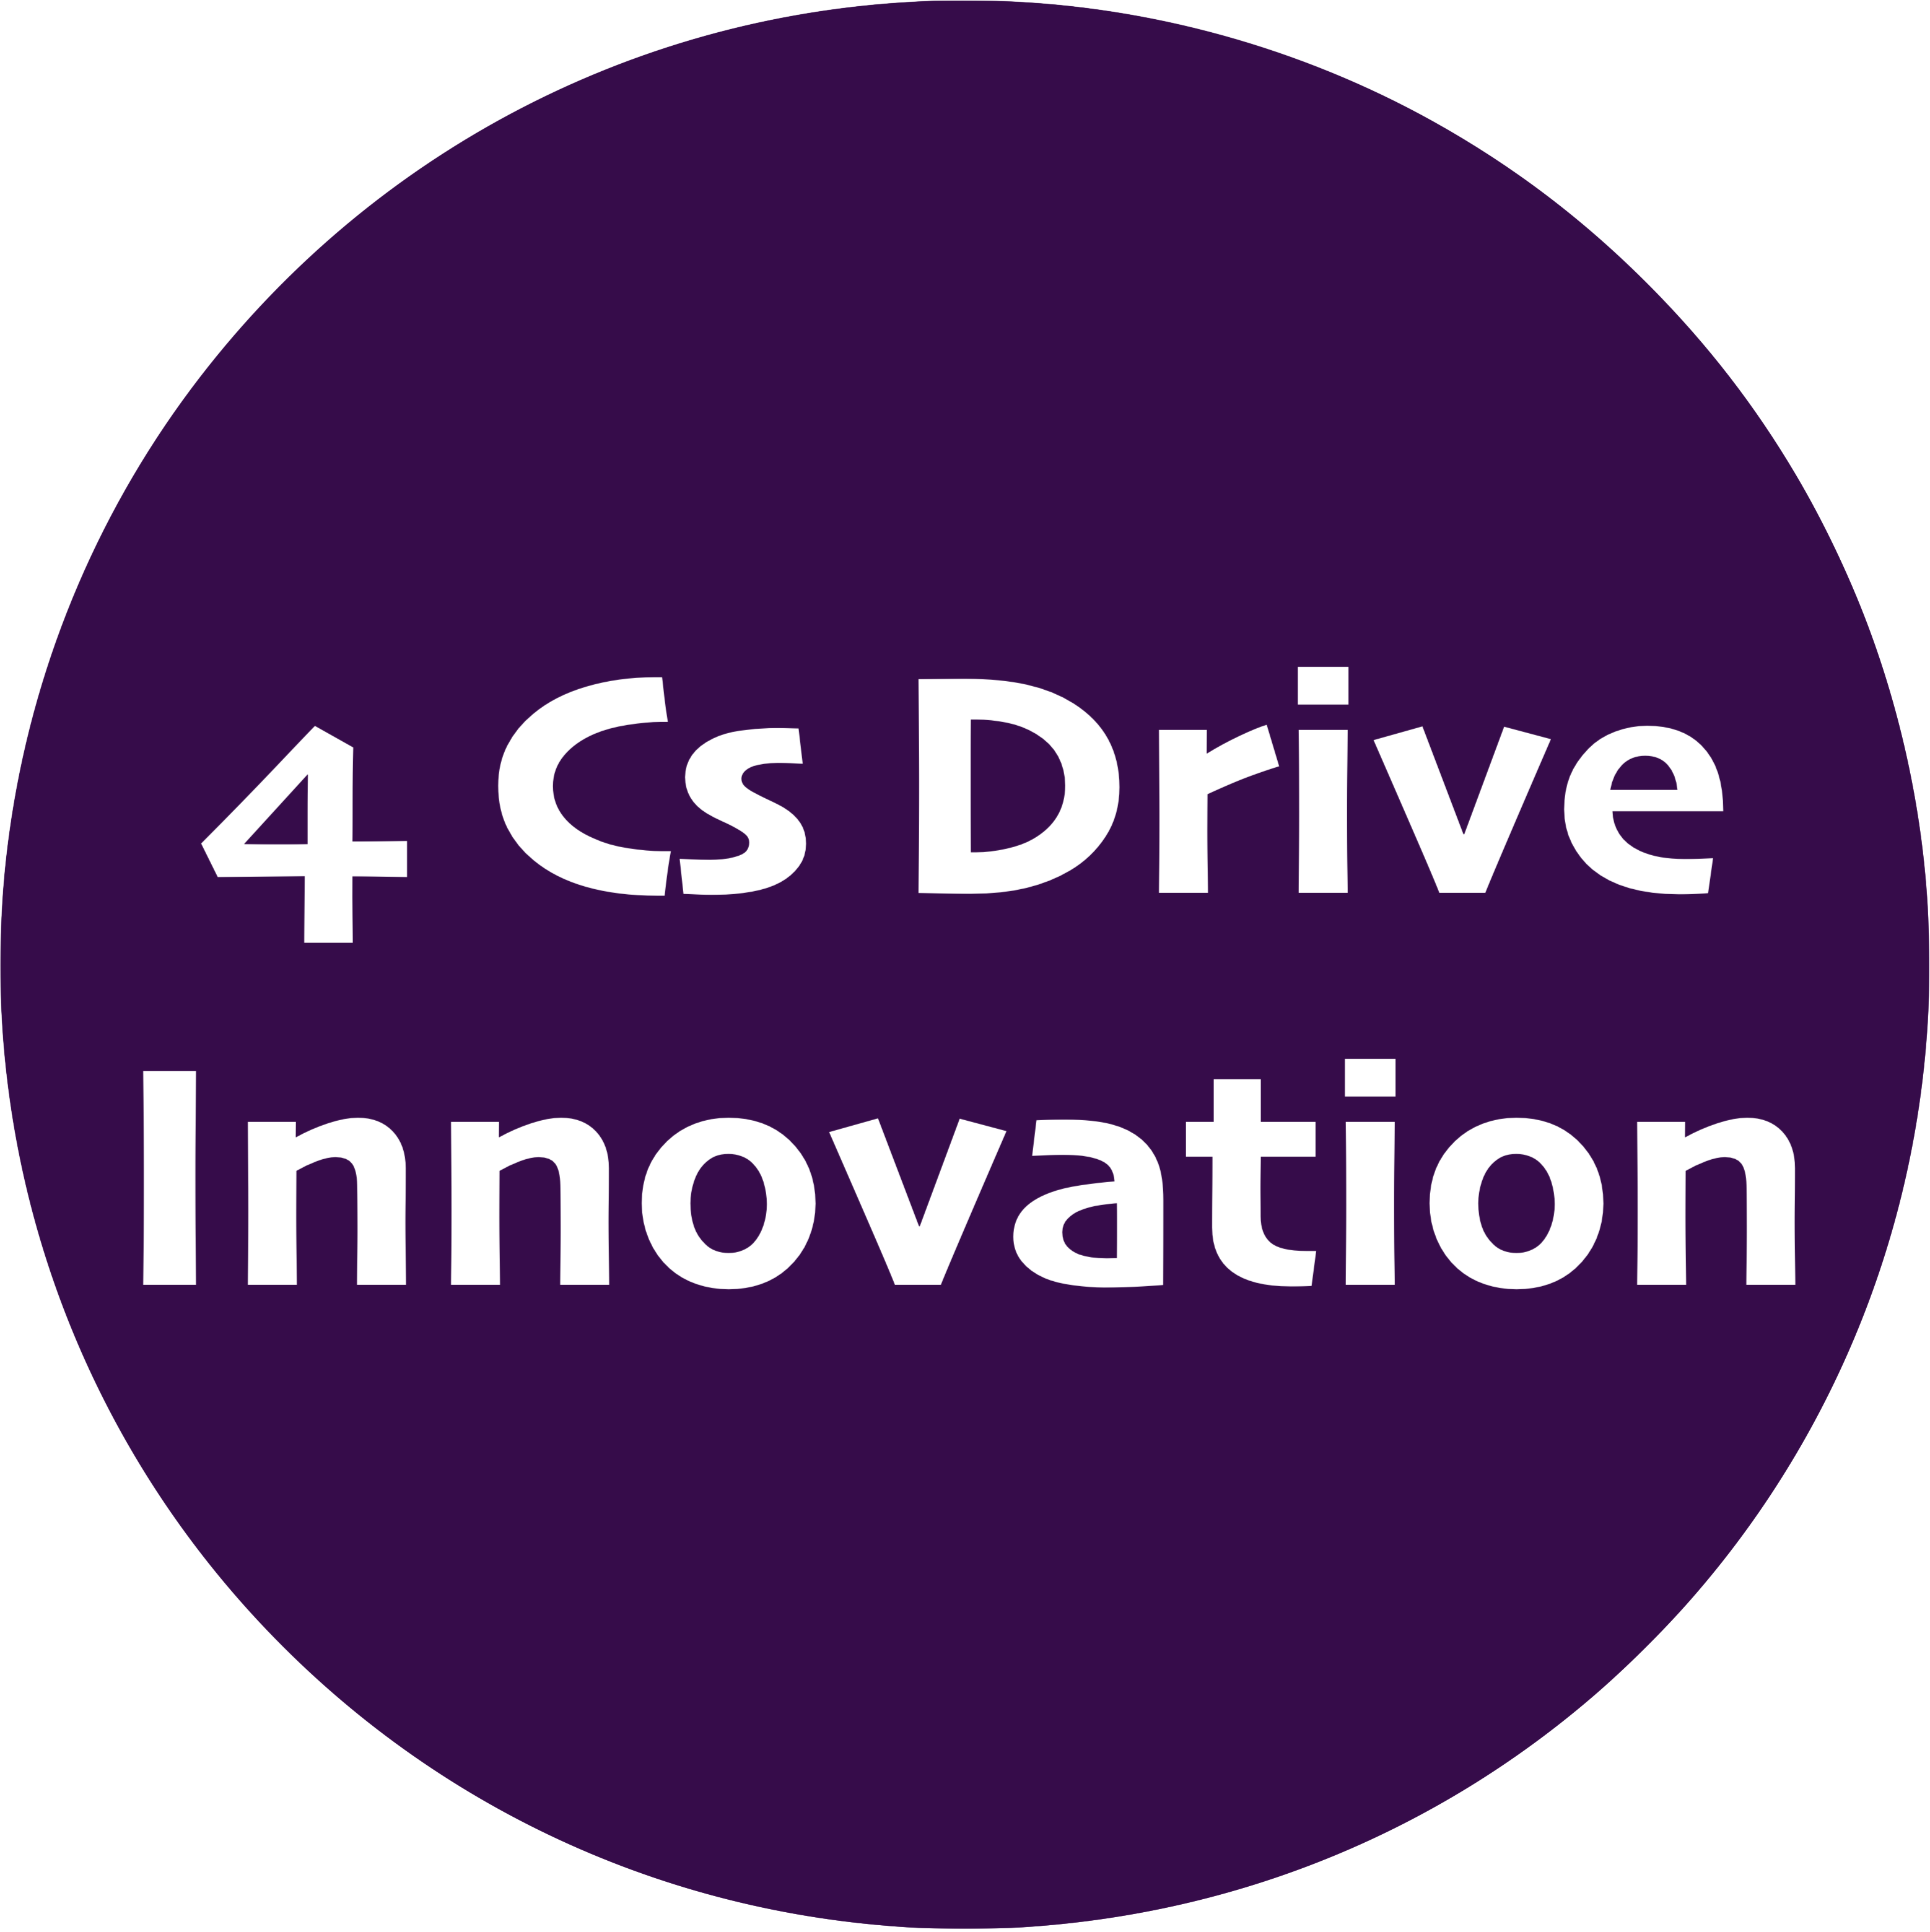 4Cs Drive Innovation